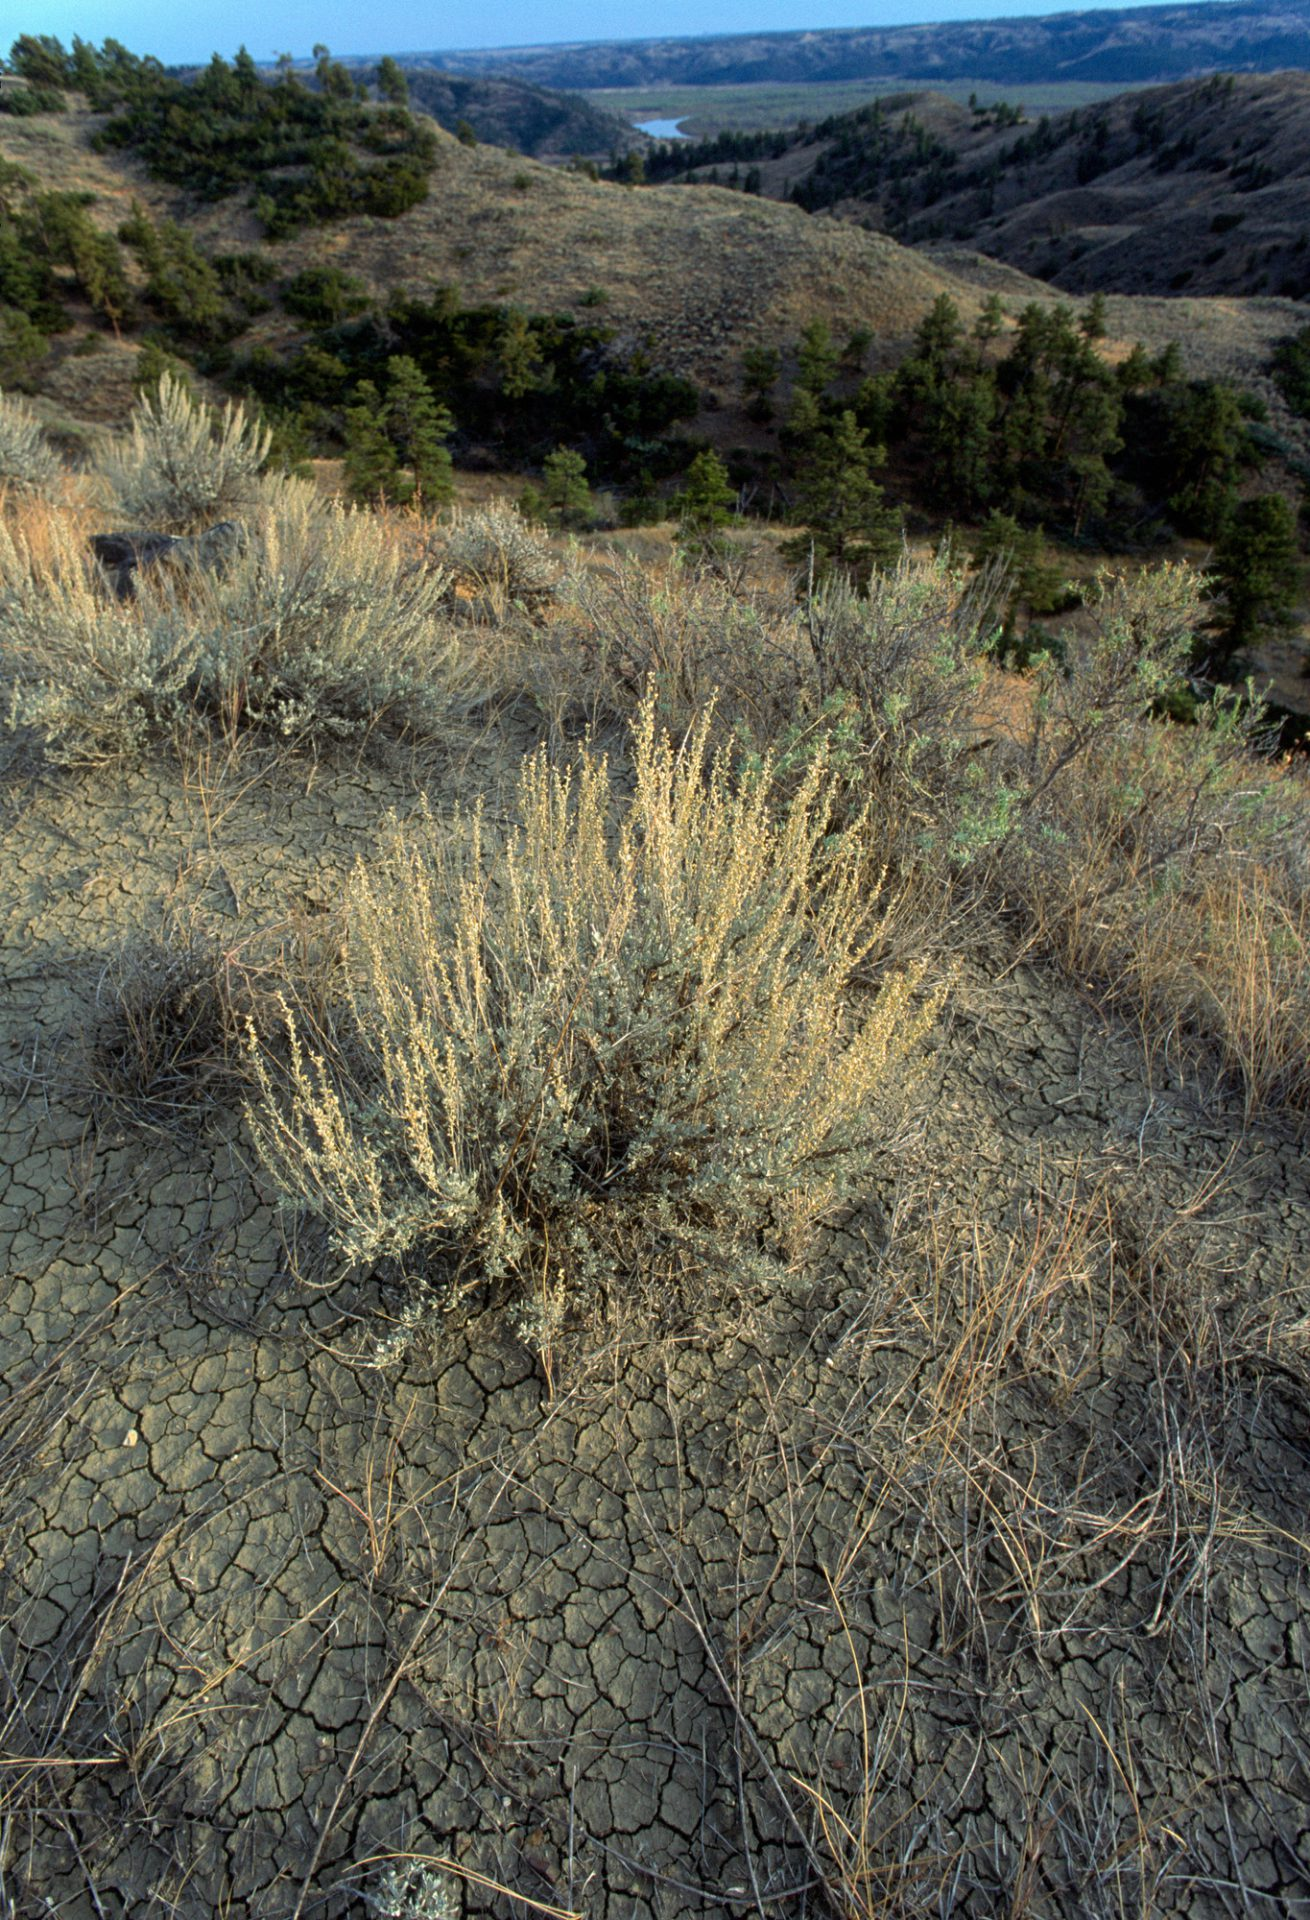 Photo: Cracked dirt and brushes at the Charles M Russell National Wildlife Refuge, Montana.